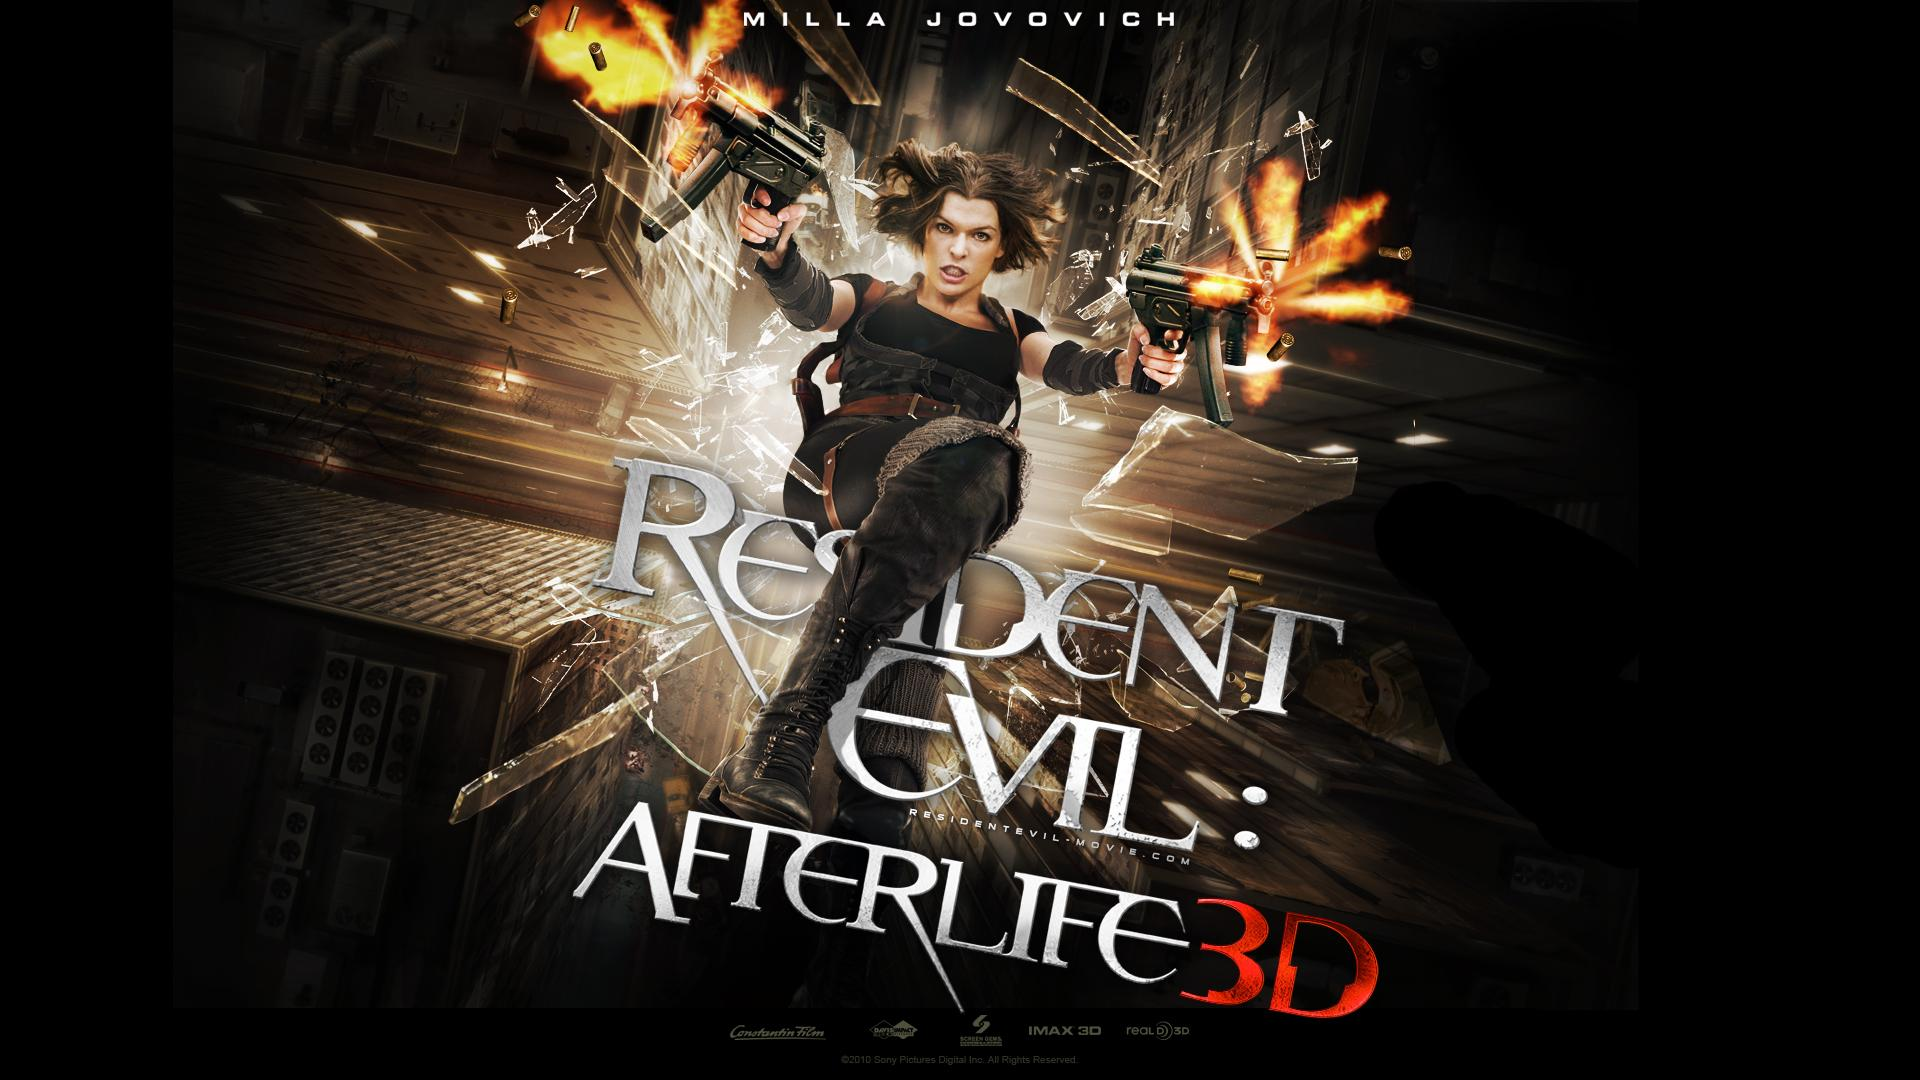 2010 Resident Evil Afterlife 3D 717.8 Kb